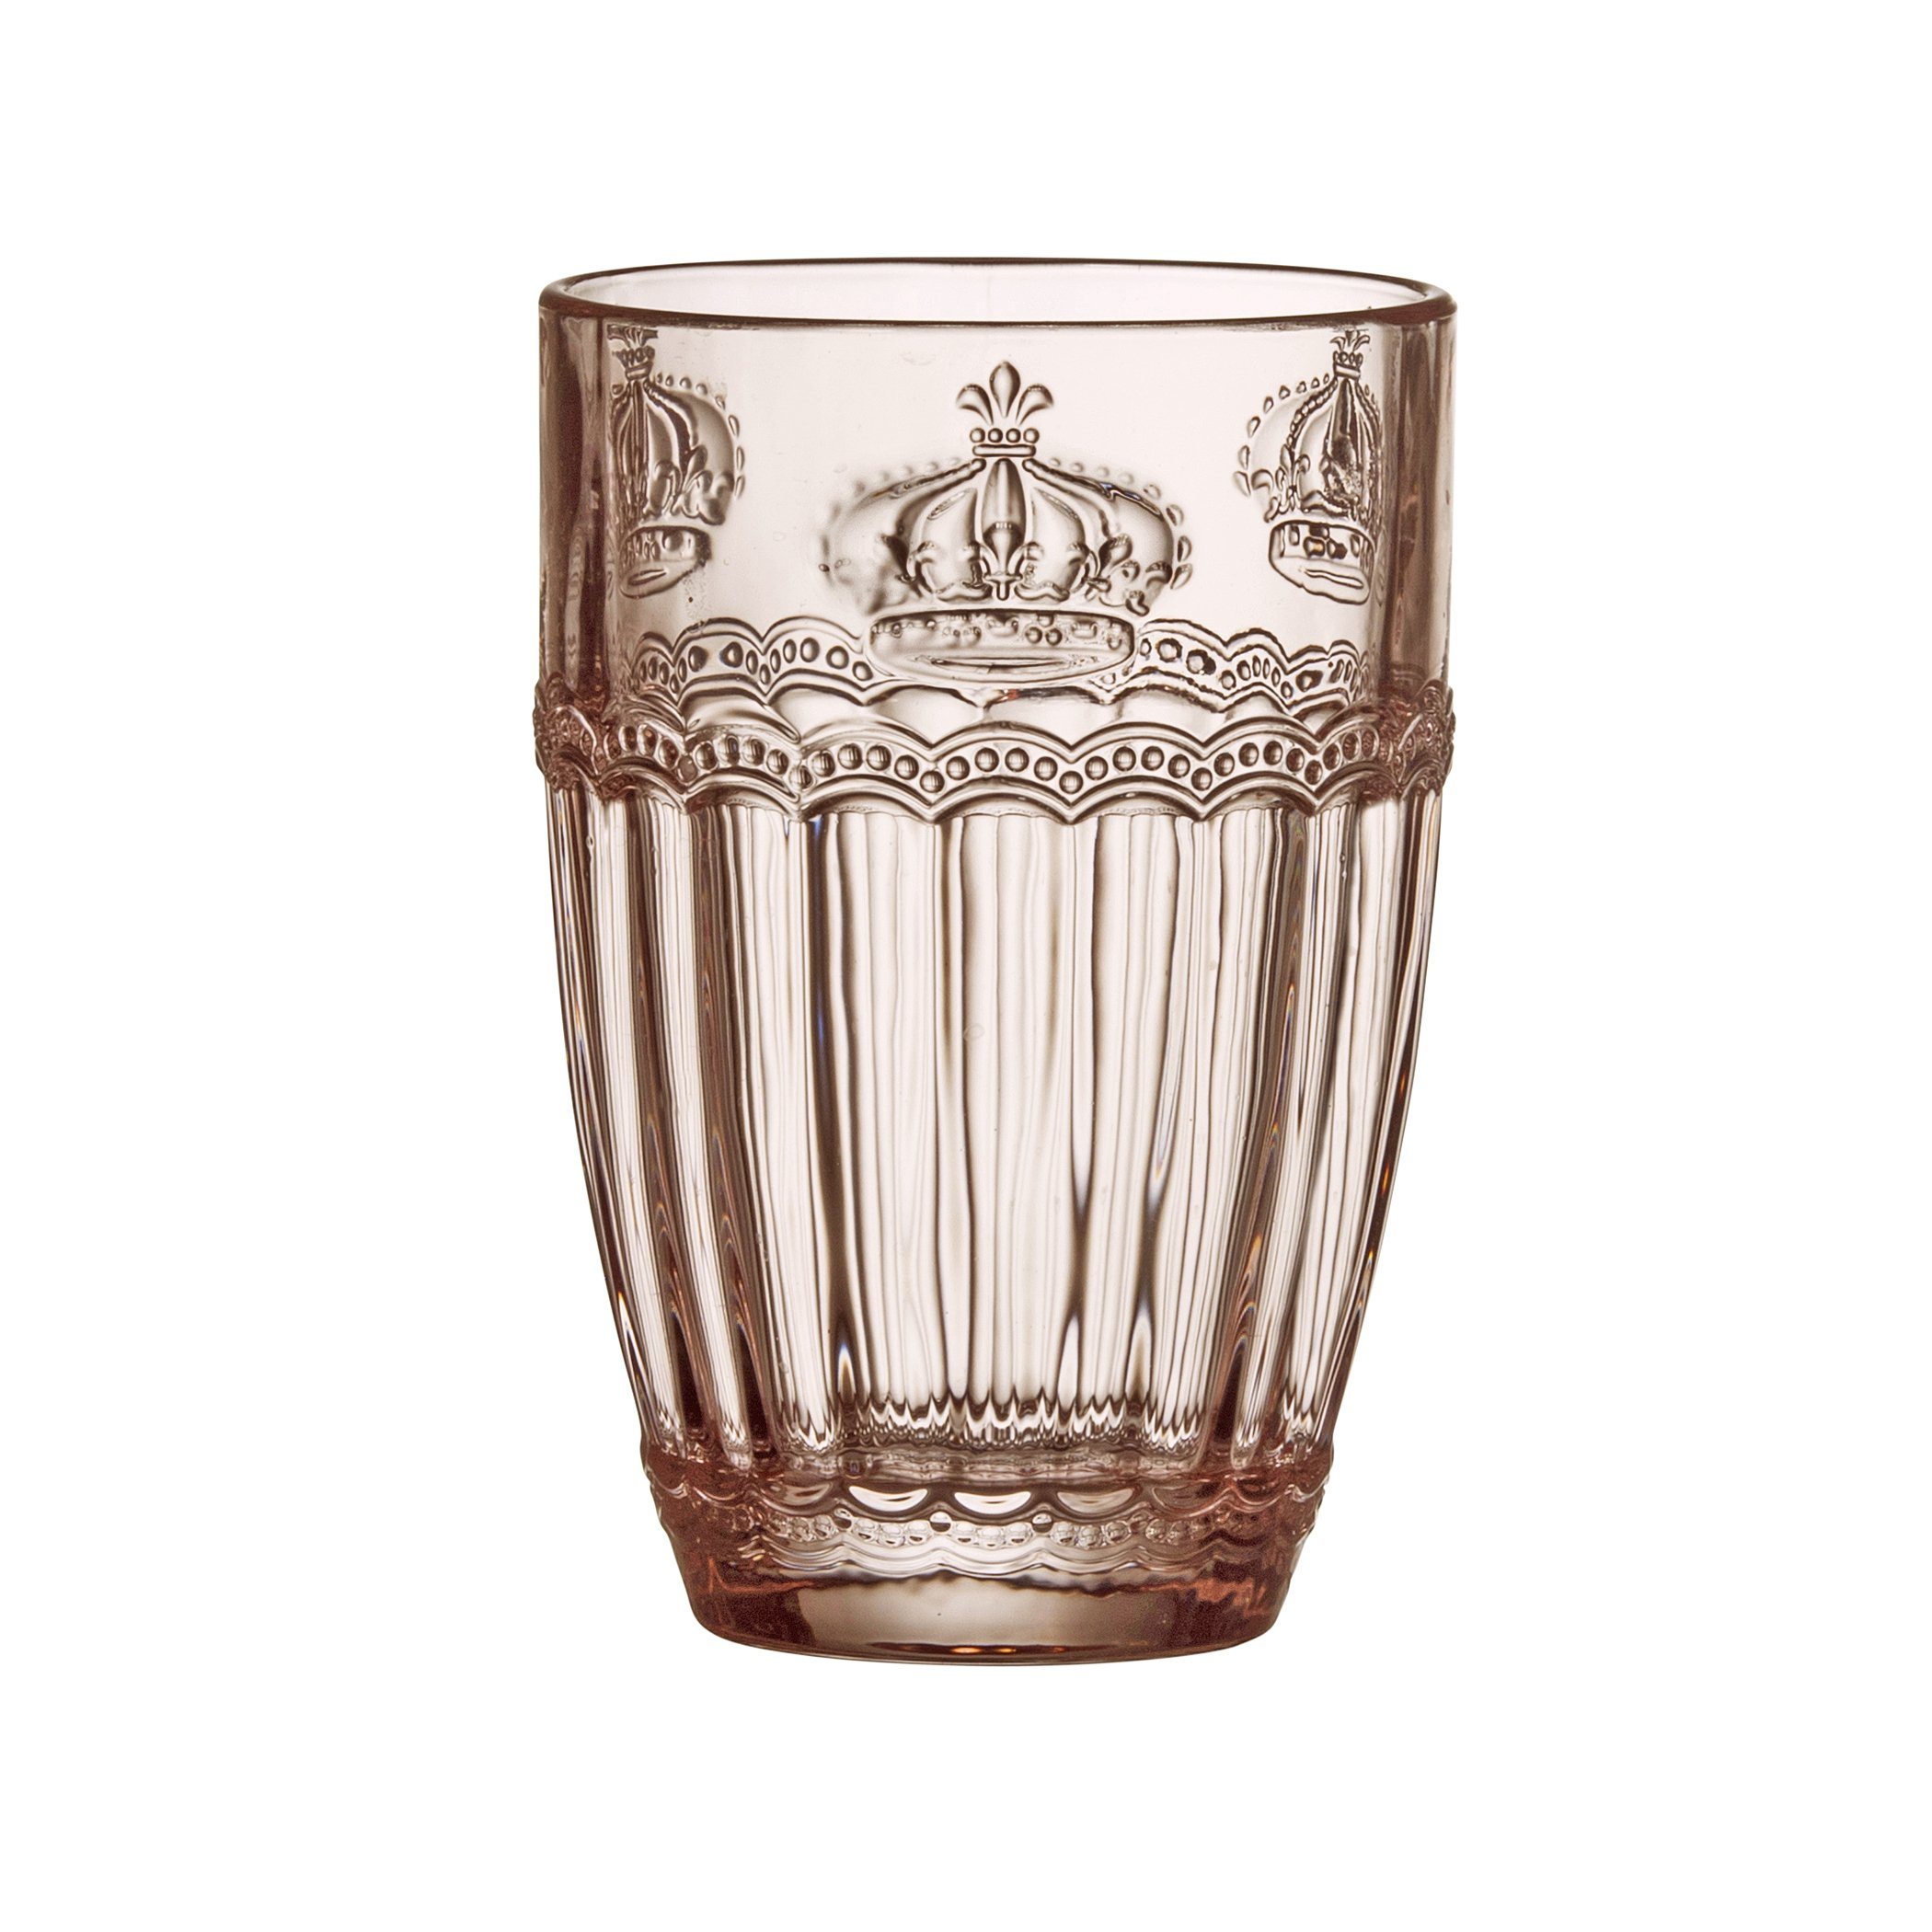 Amici Home, A7CHN413S6R, Victoria Crown Collection Rose Quartz Hiball Drinking Glass, Dishwasher Safe, Set of 6, 14 Ounces